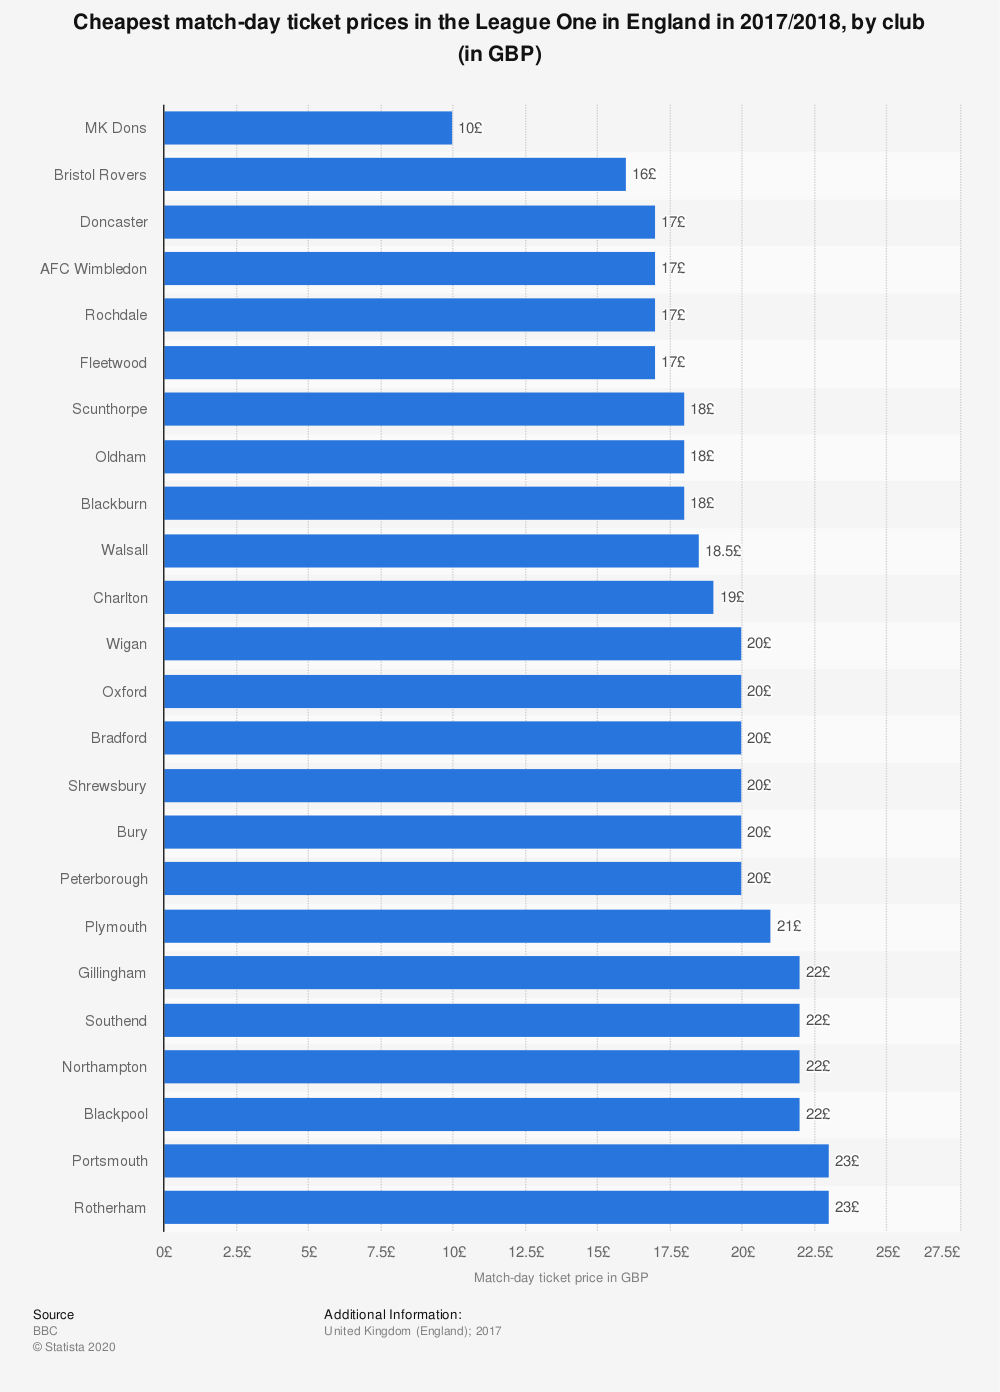 Statistic: Cheapest match-day ticket prices in the League One in England in 2017/2018, by club (in GBP) | Statista